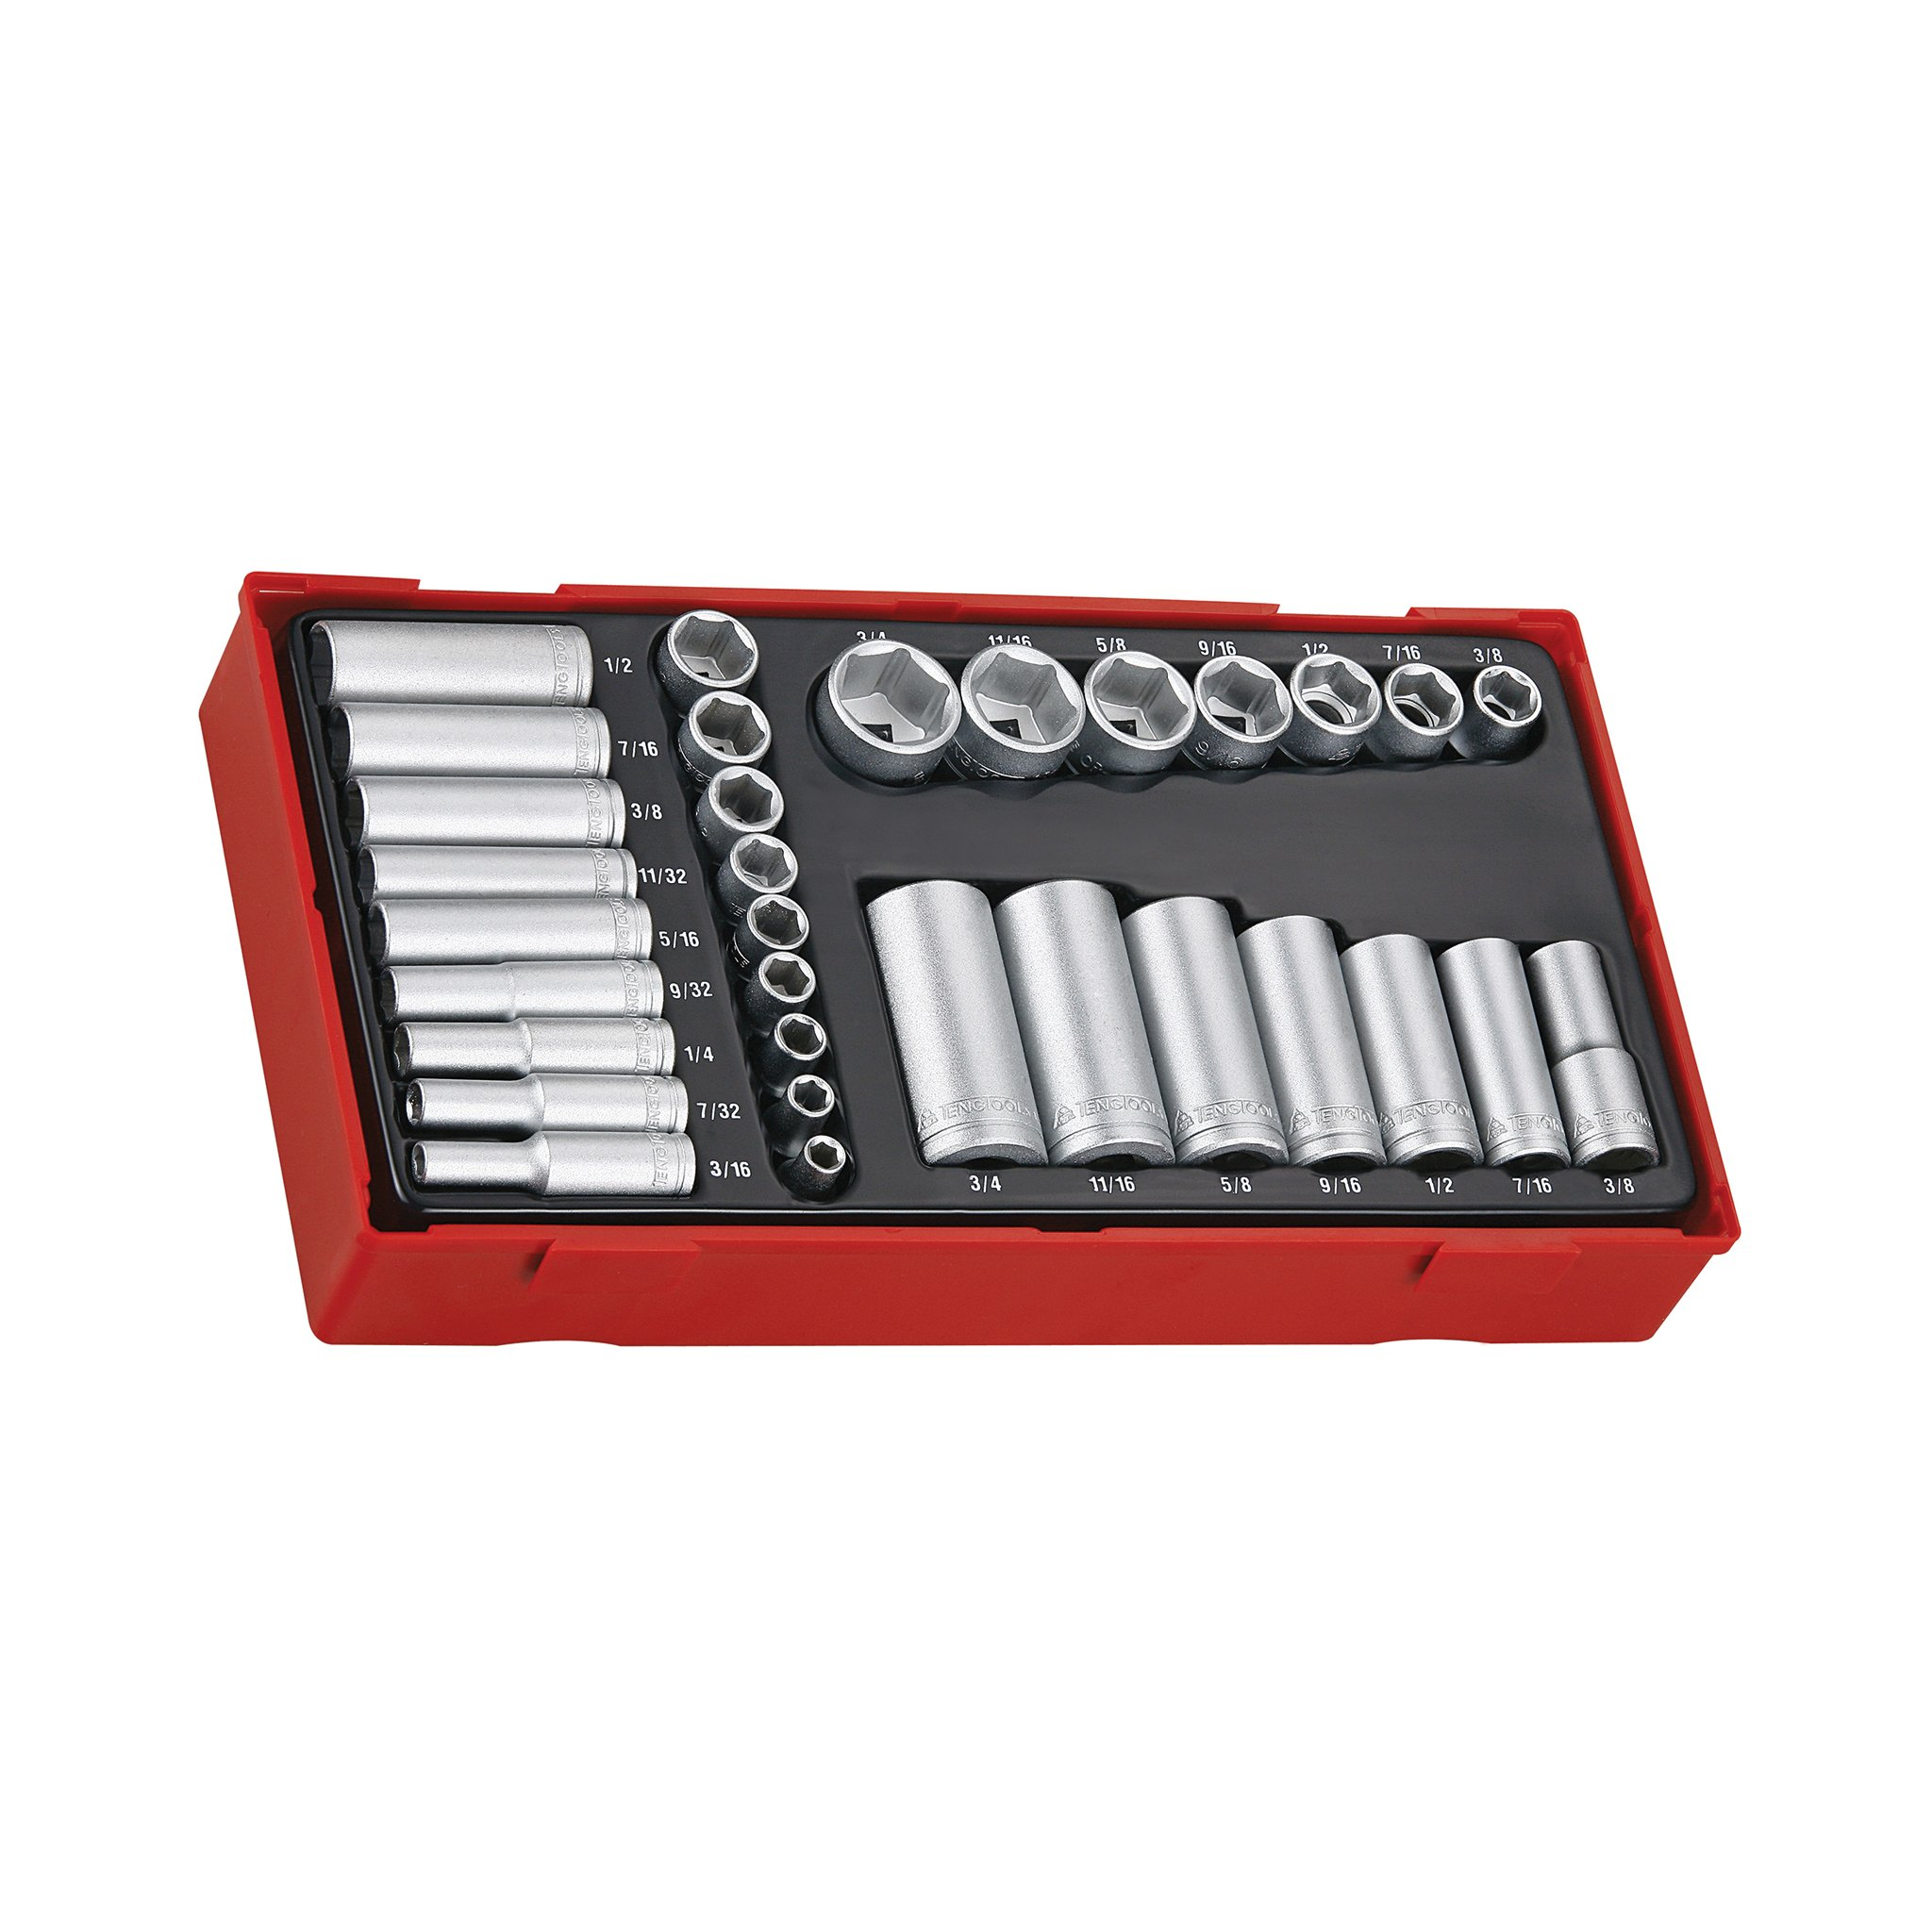 Teng Tools 32 Piece 1/4 Inch & 3/8 Inch Drive SAE 6 Point Regular/Shallow & Deep Socket Set - TTAF32 by Teng Tools